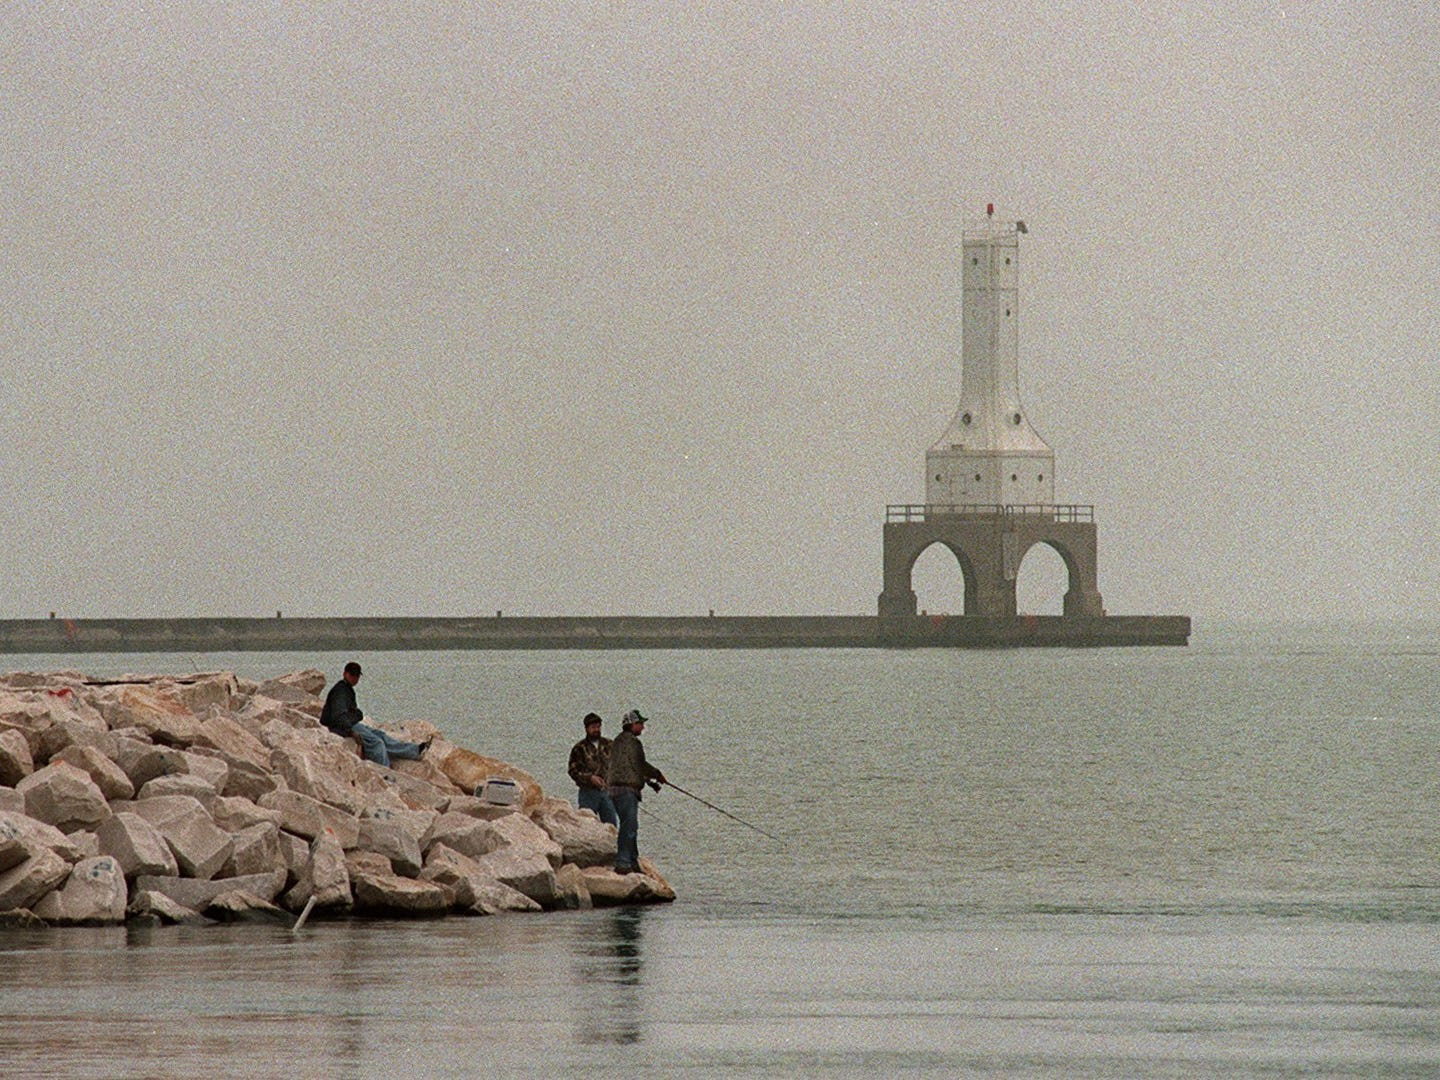 Anglers fish in Port Washington in March 1998.